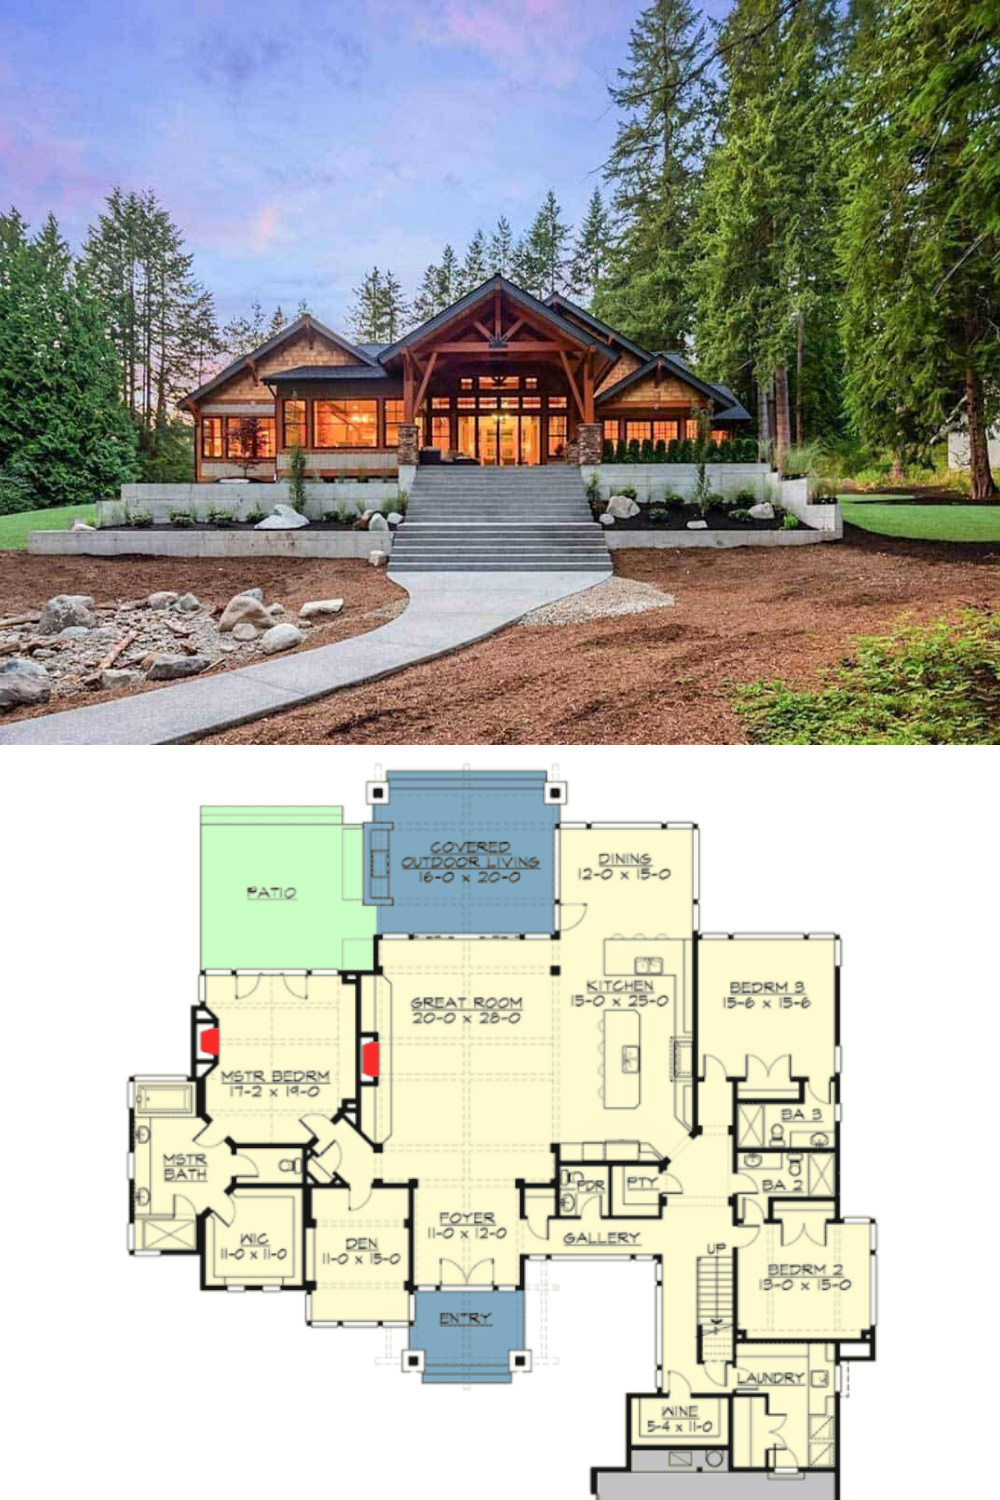 4 Bdrm Open Concept Mountain Style Home A Real Beauty Craftsman House Plans Rustic House Plans Lake House Plans